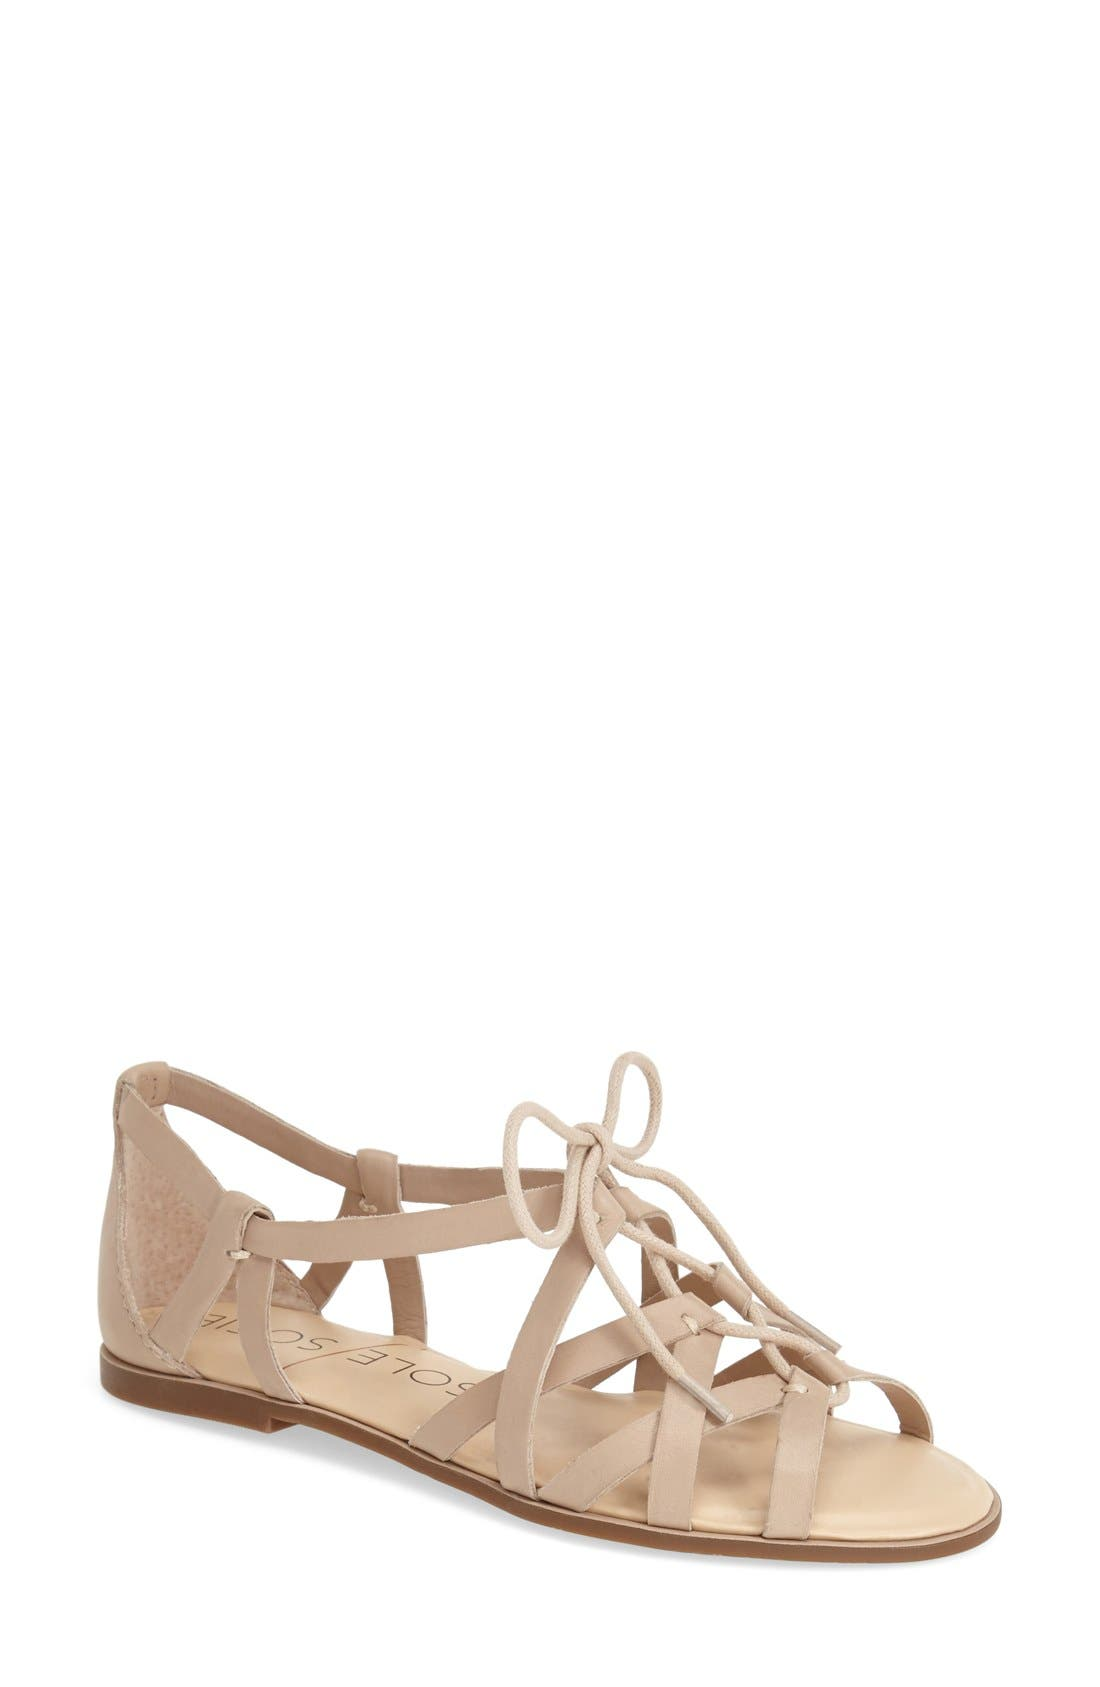 SOLE SOCIETY 'Gillian' Gladiator Sandal, Main, color, 200